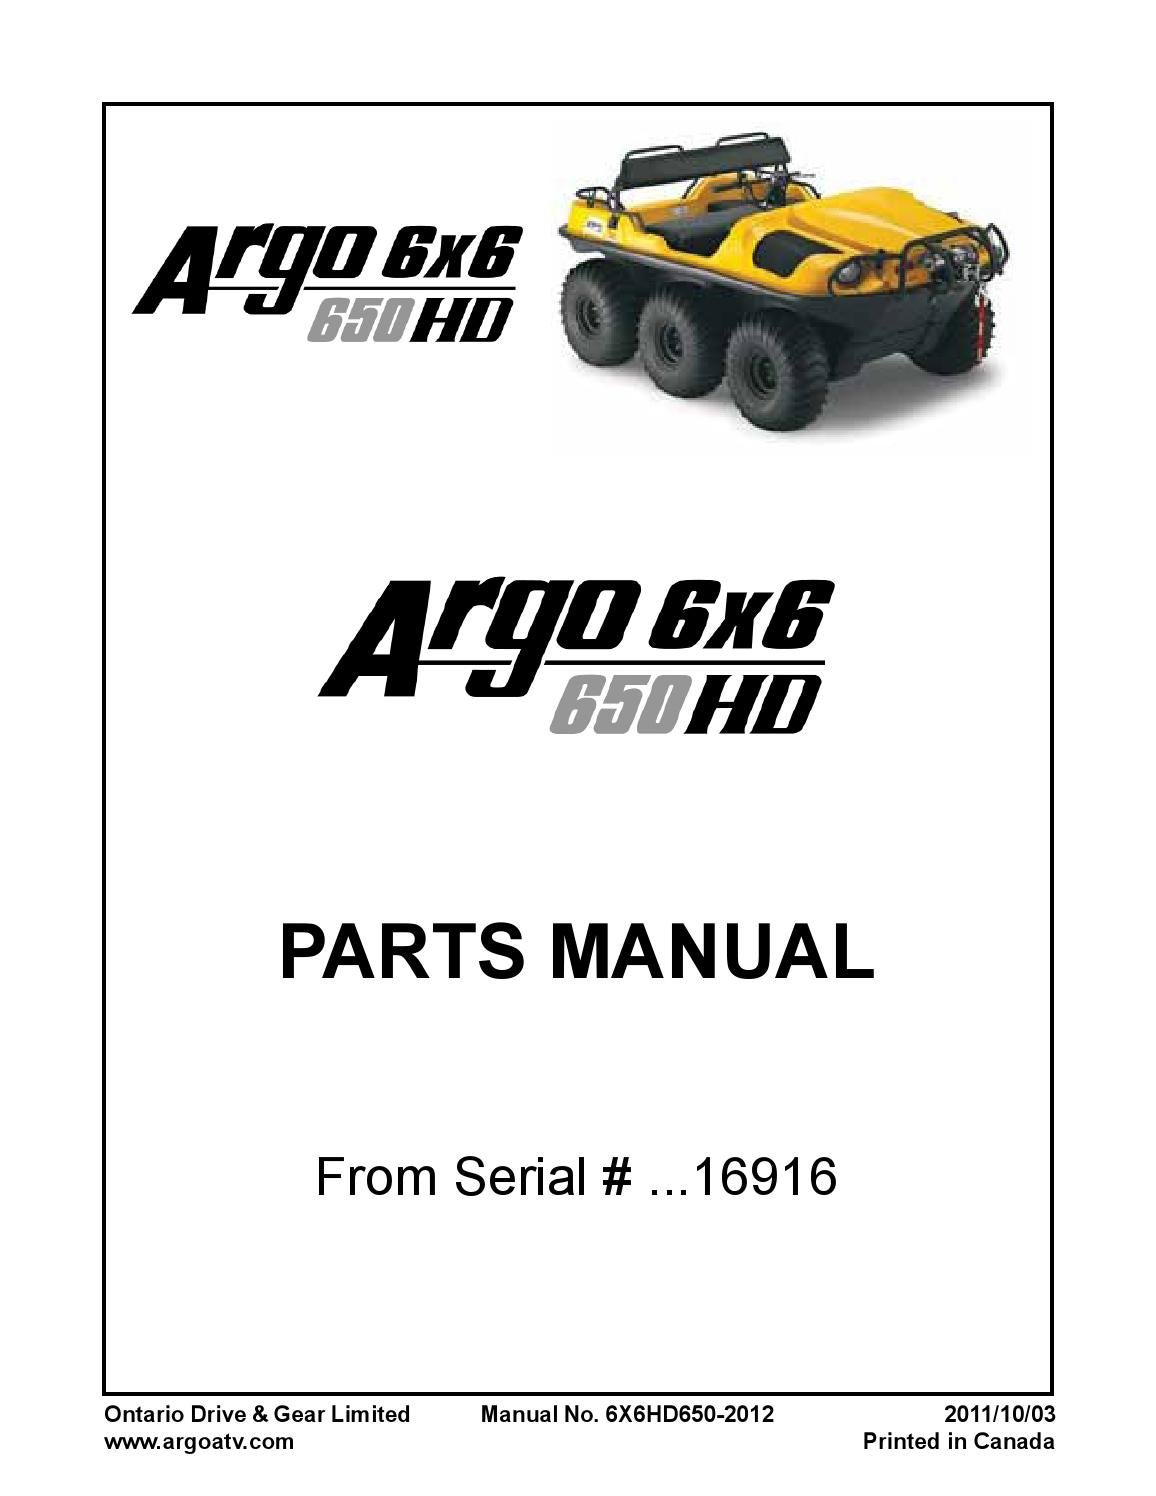 6x6 hd 650 parts manual 6x6hd650 2011 2011 09 15 from serial no 16916 by  Spartak55 - issuu